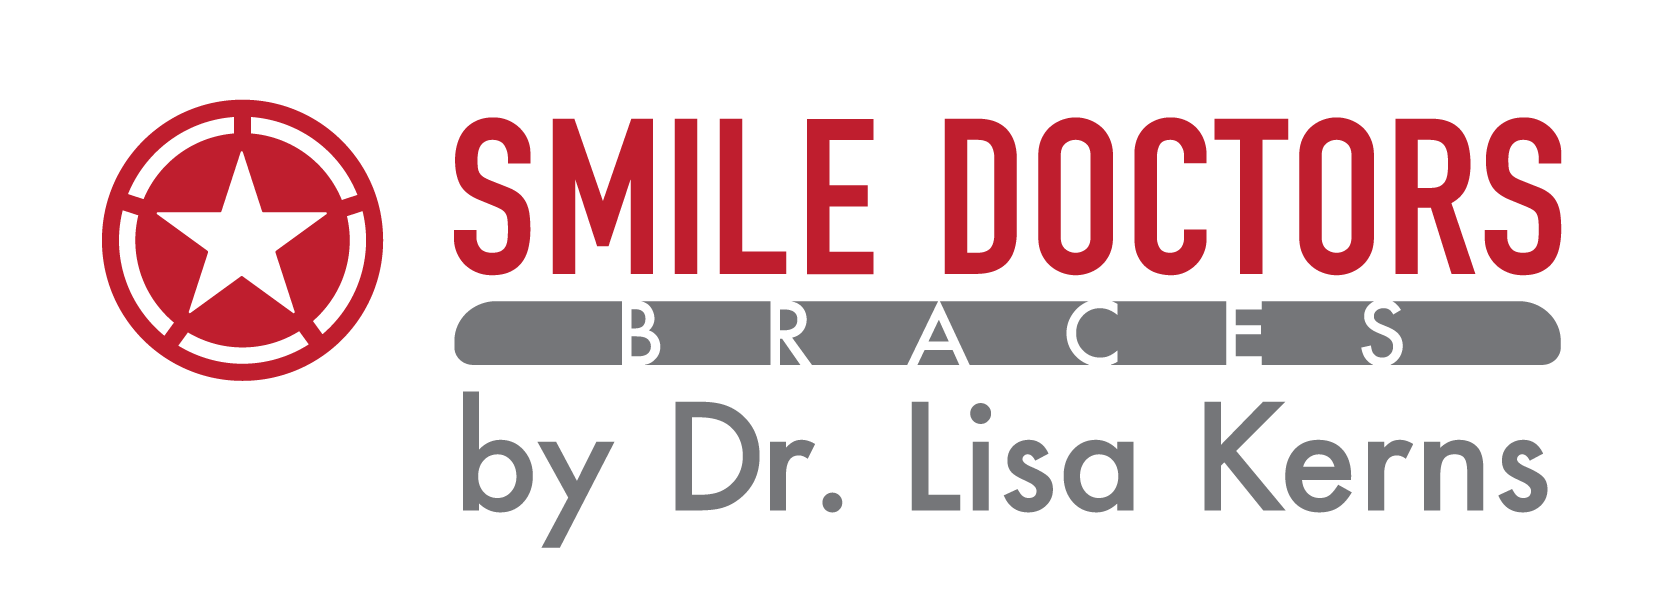 Smile Doctors Braces by Dr. Lisa Kerns